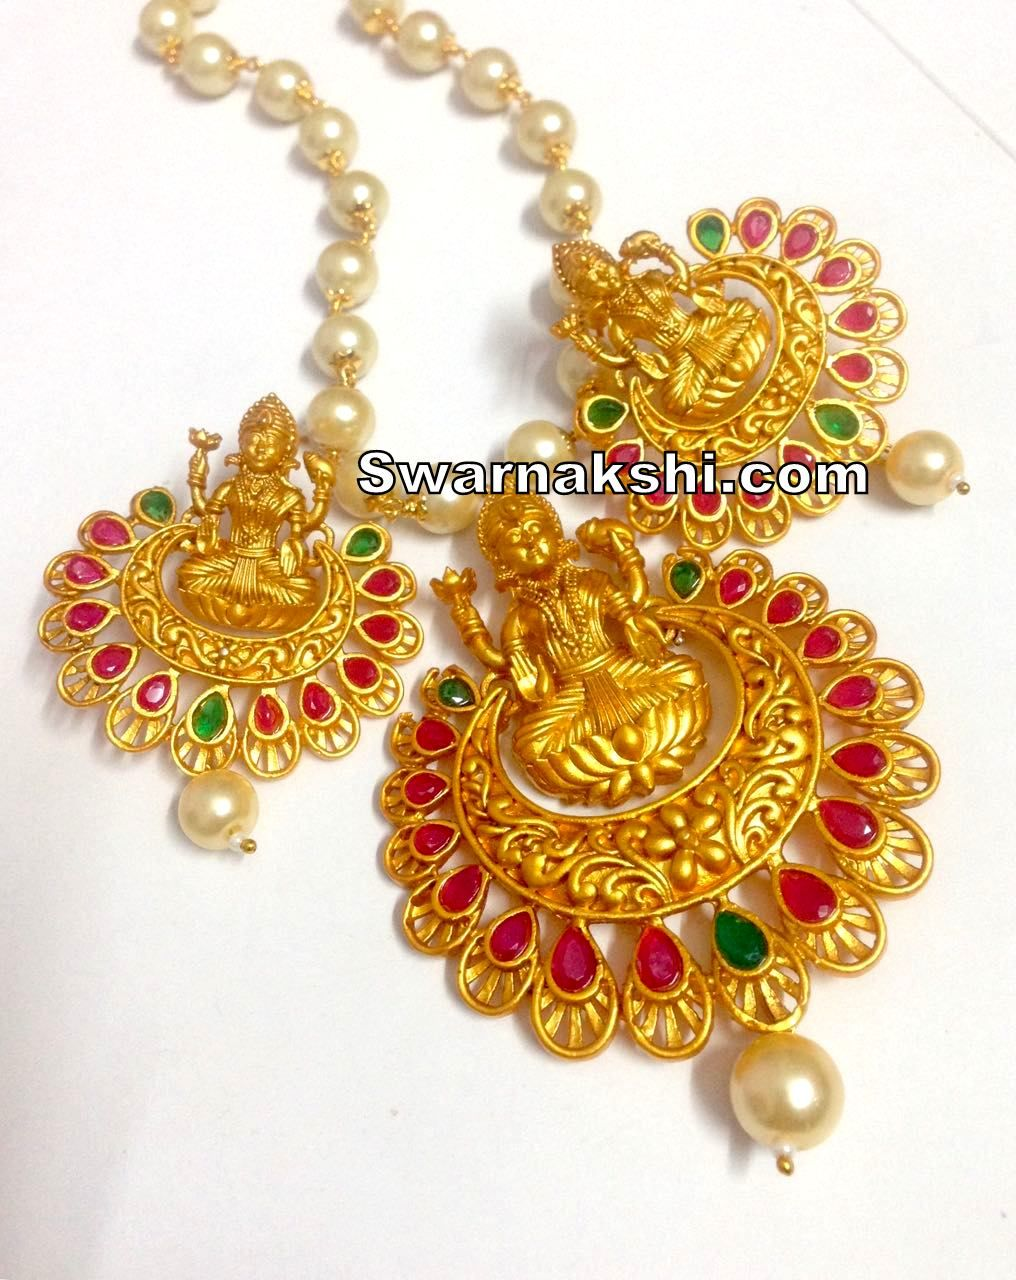 1 gram gold ruby emerald lakshmi chandbali pendant set buy online 1 gram gold ruby emerald lakshmi chandbali pendant set buy online swarnakshi jewels and accessories aloadofball Image collections